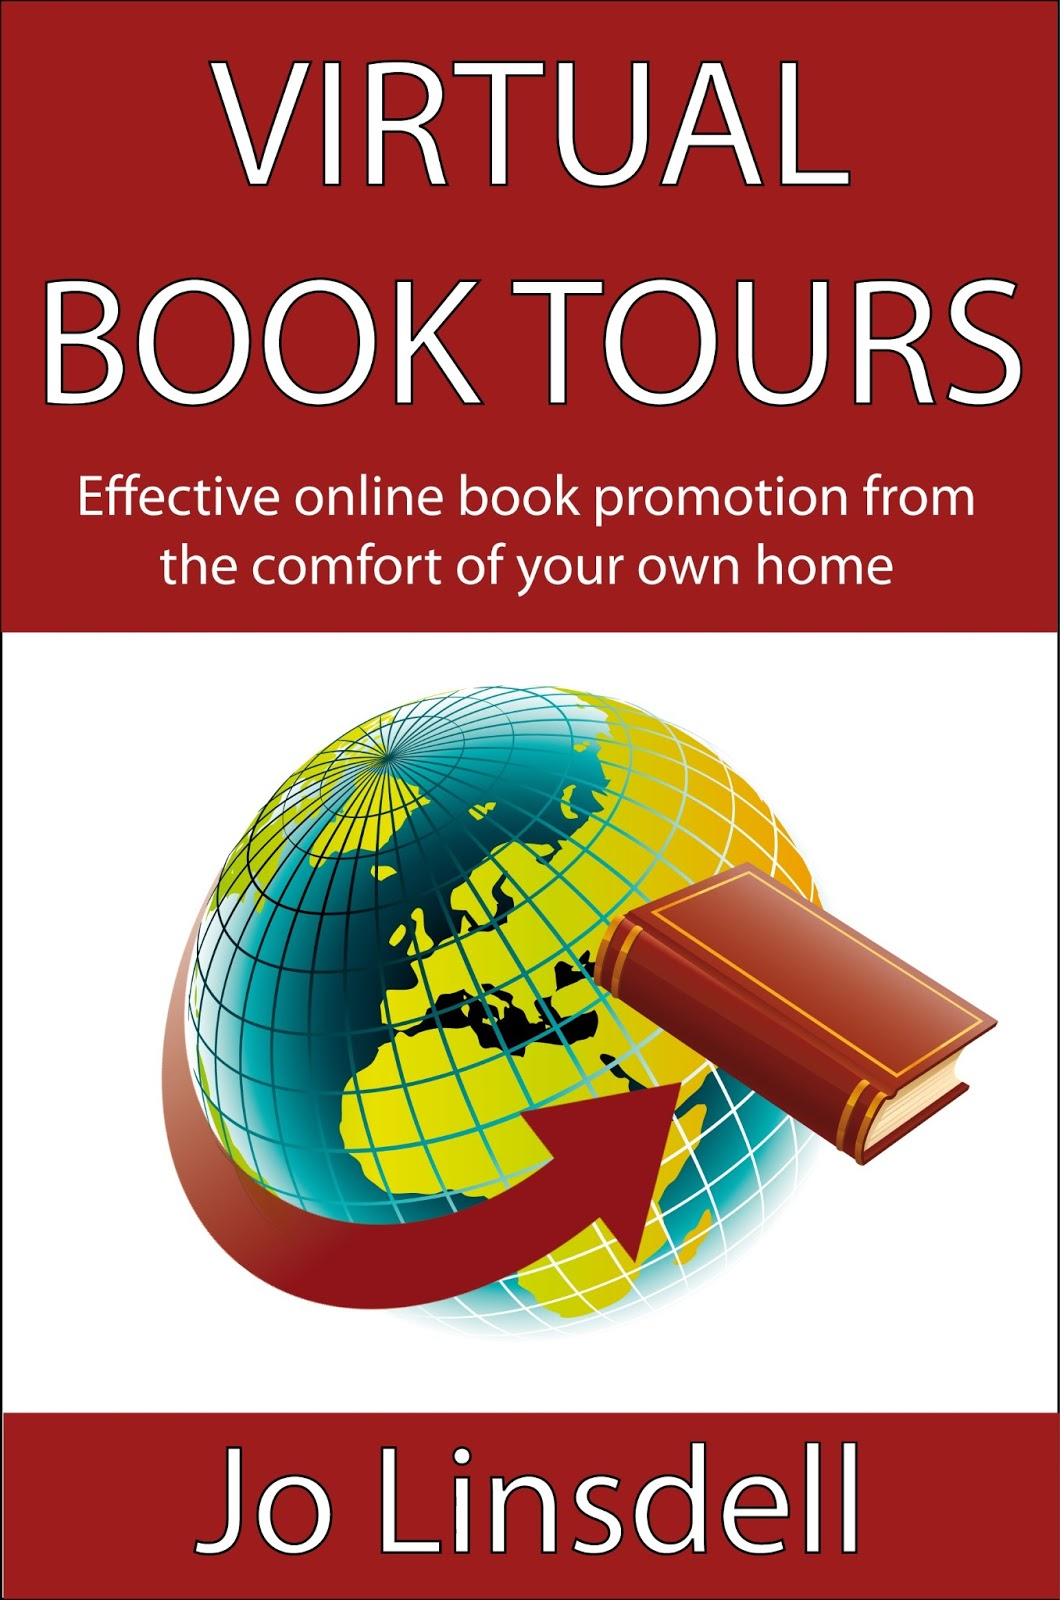 Virtual Book Tours by Jo Linsdell